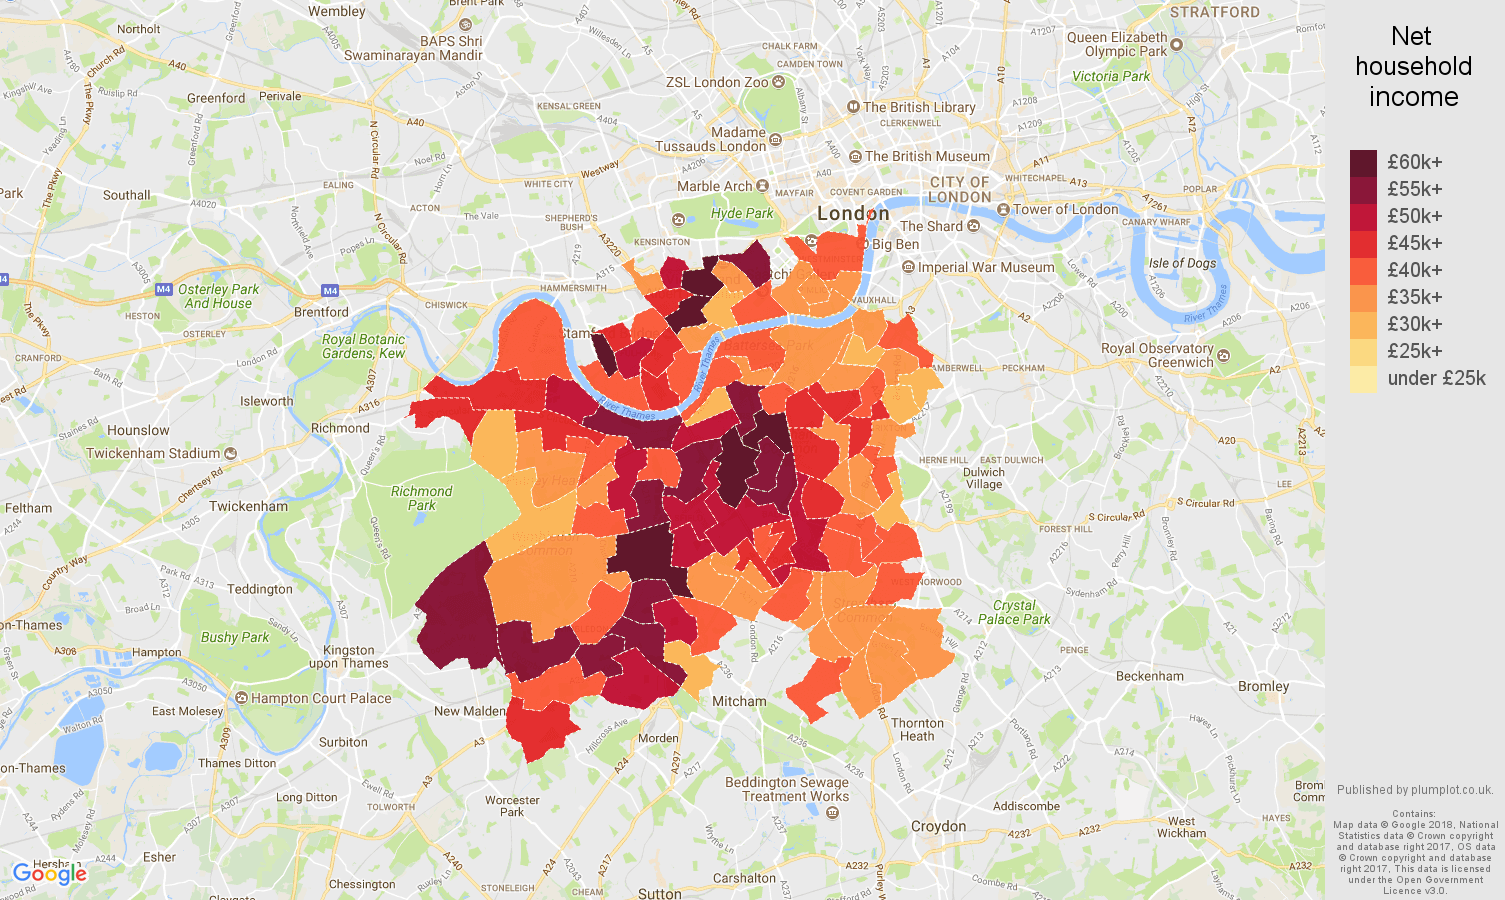 South West London net household income map